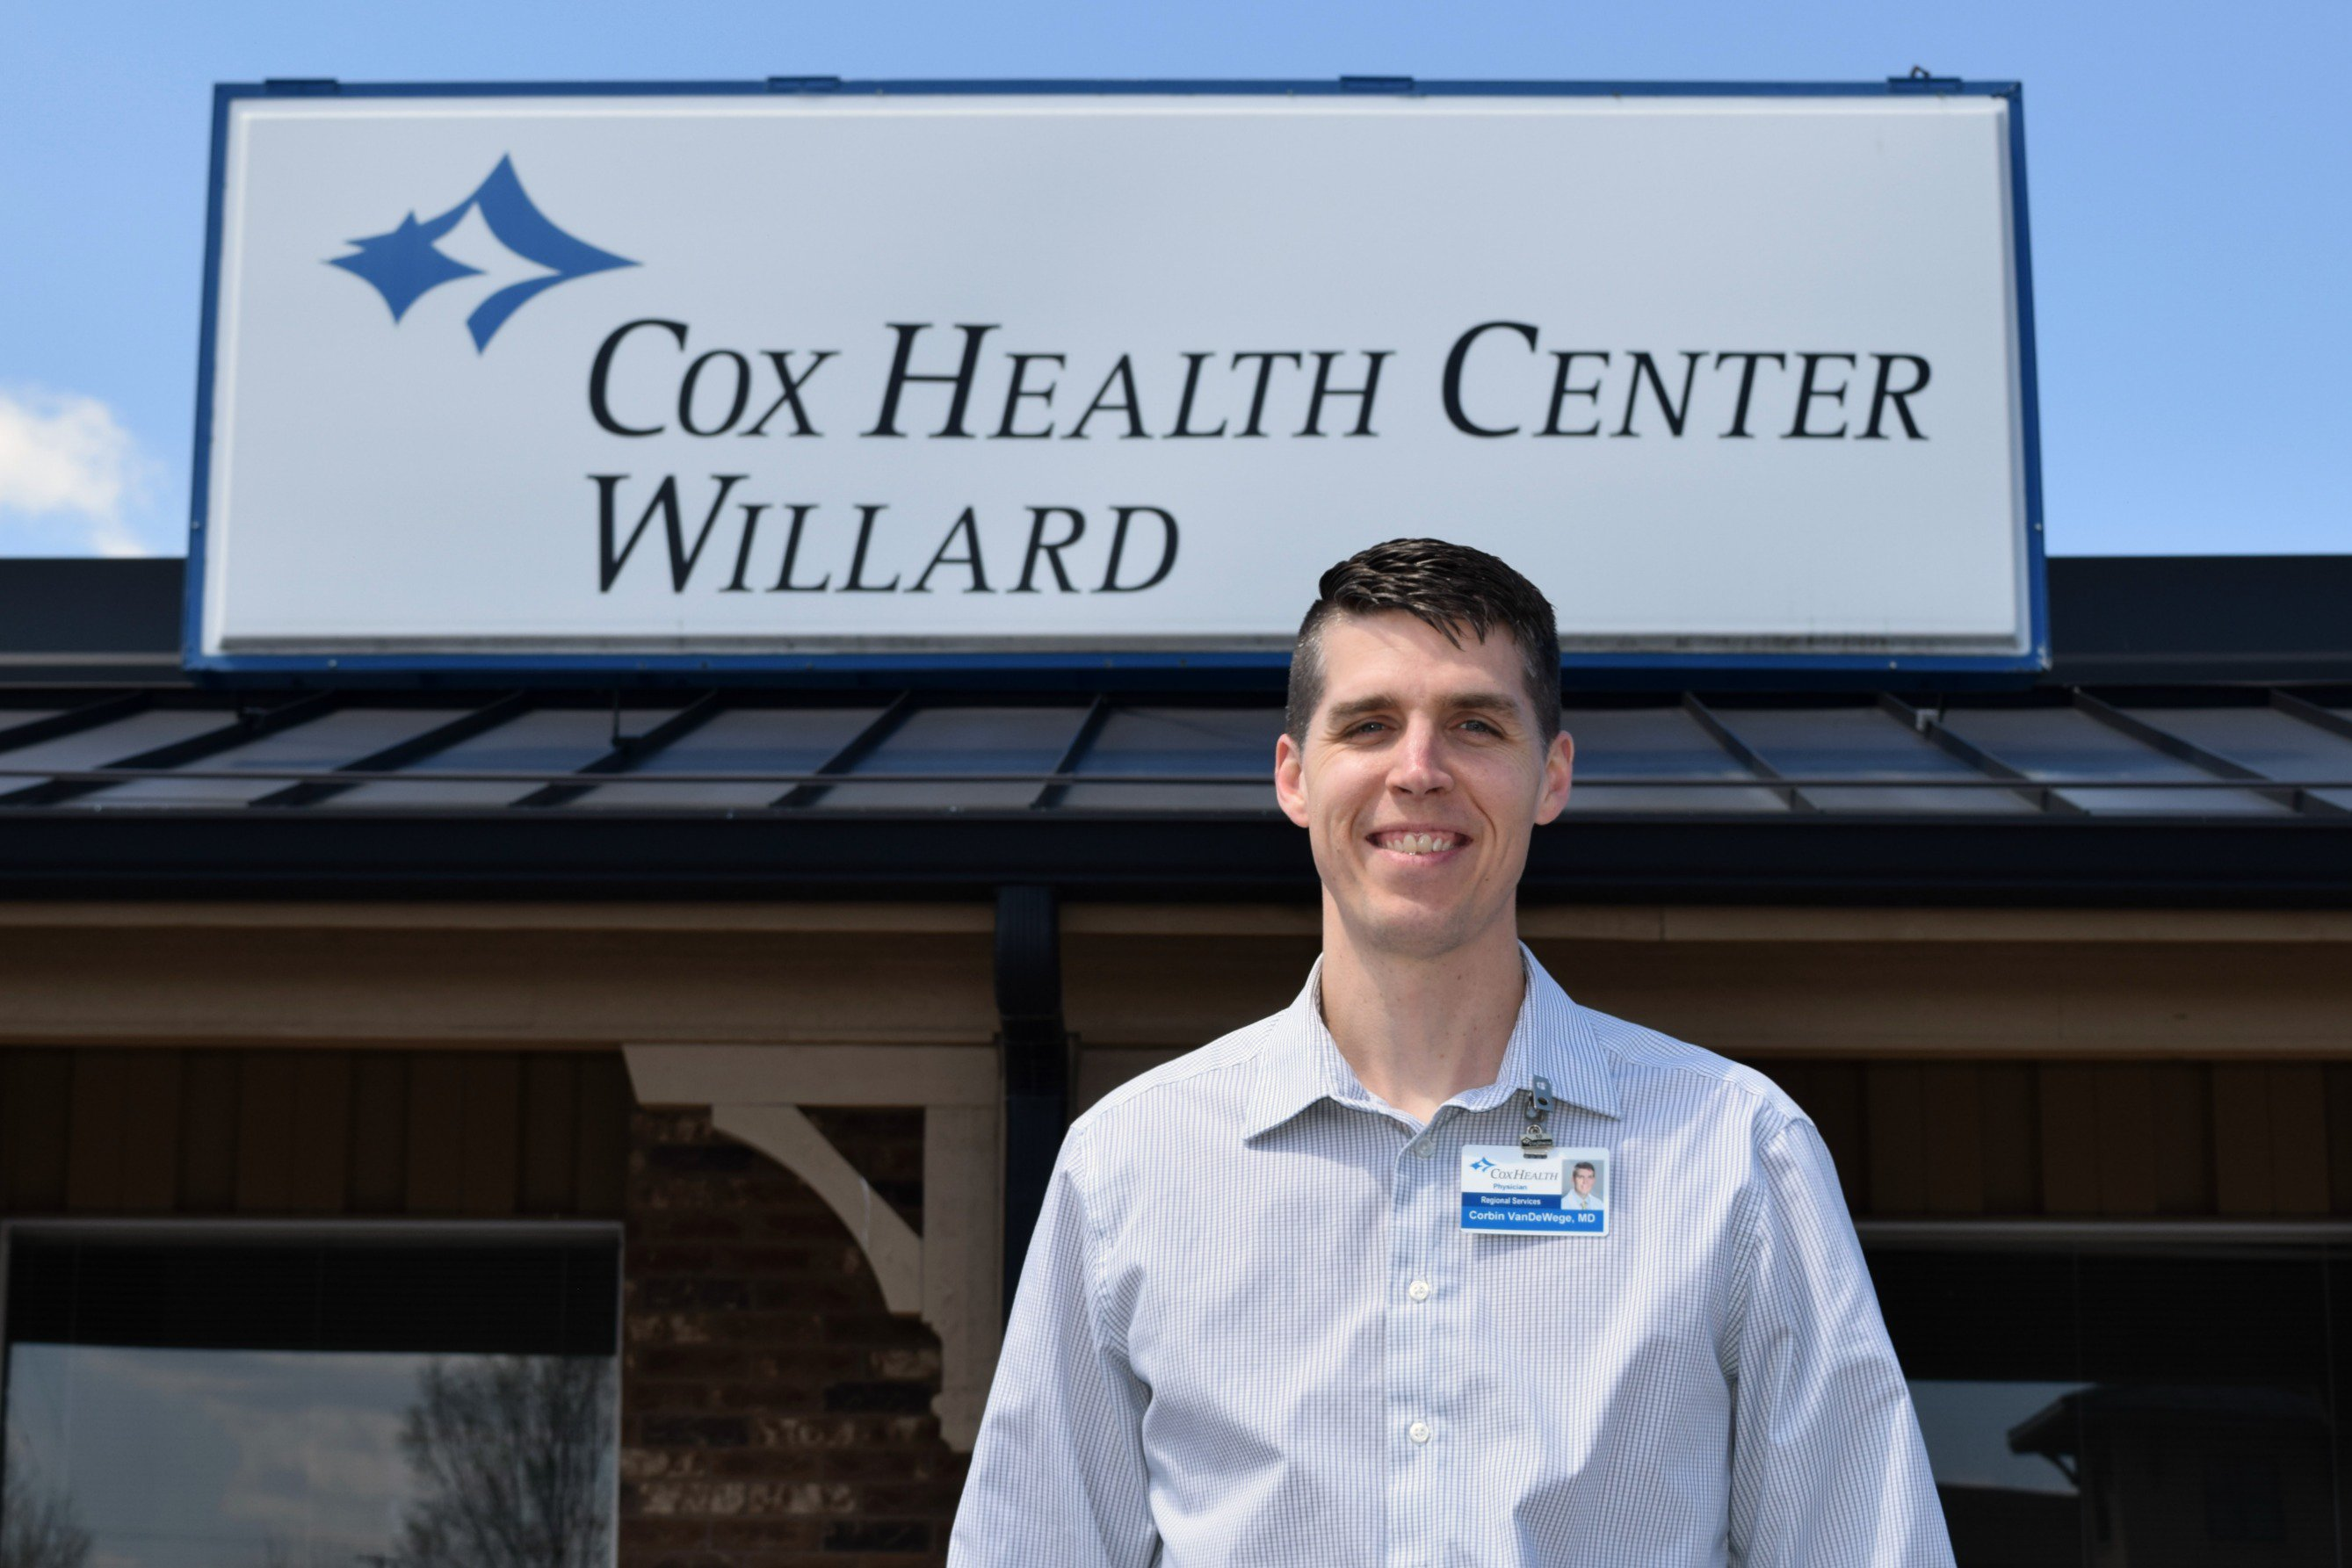 Corbin VanDeWege stands outside CoxHealth Center Willard